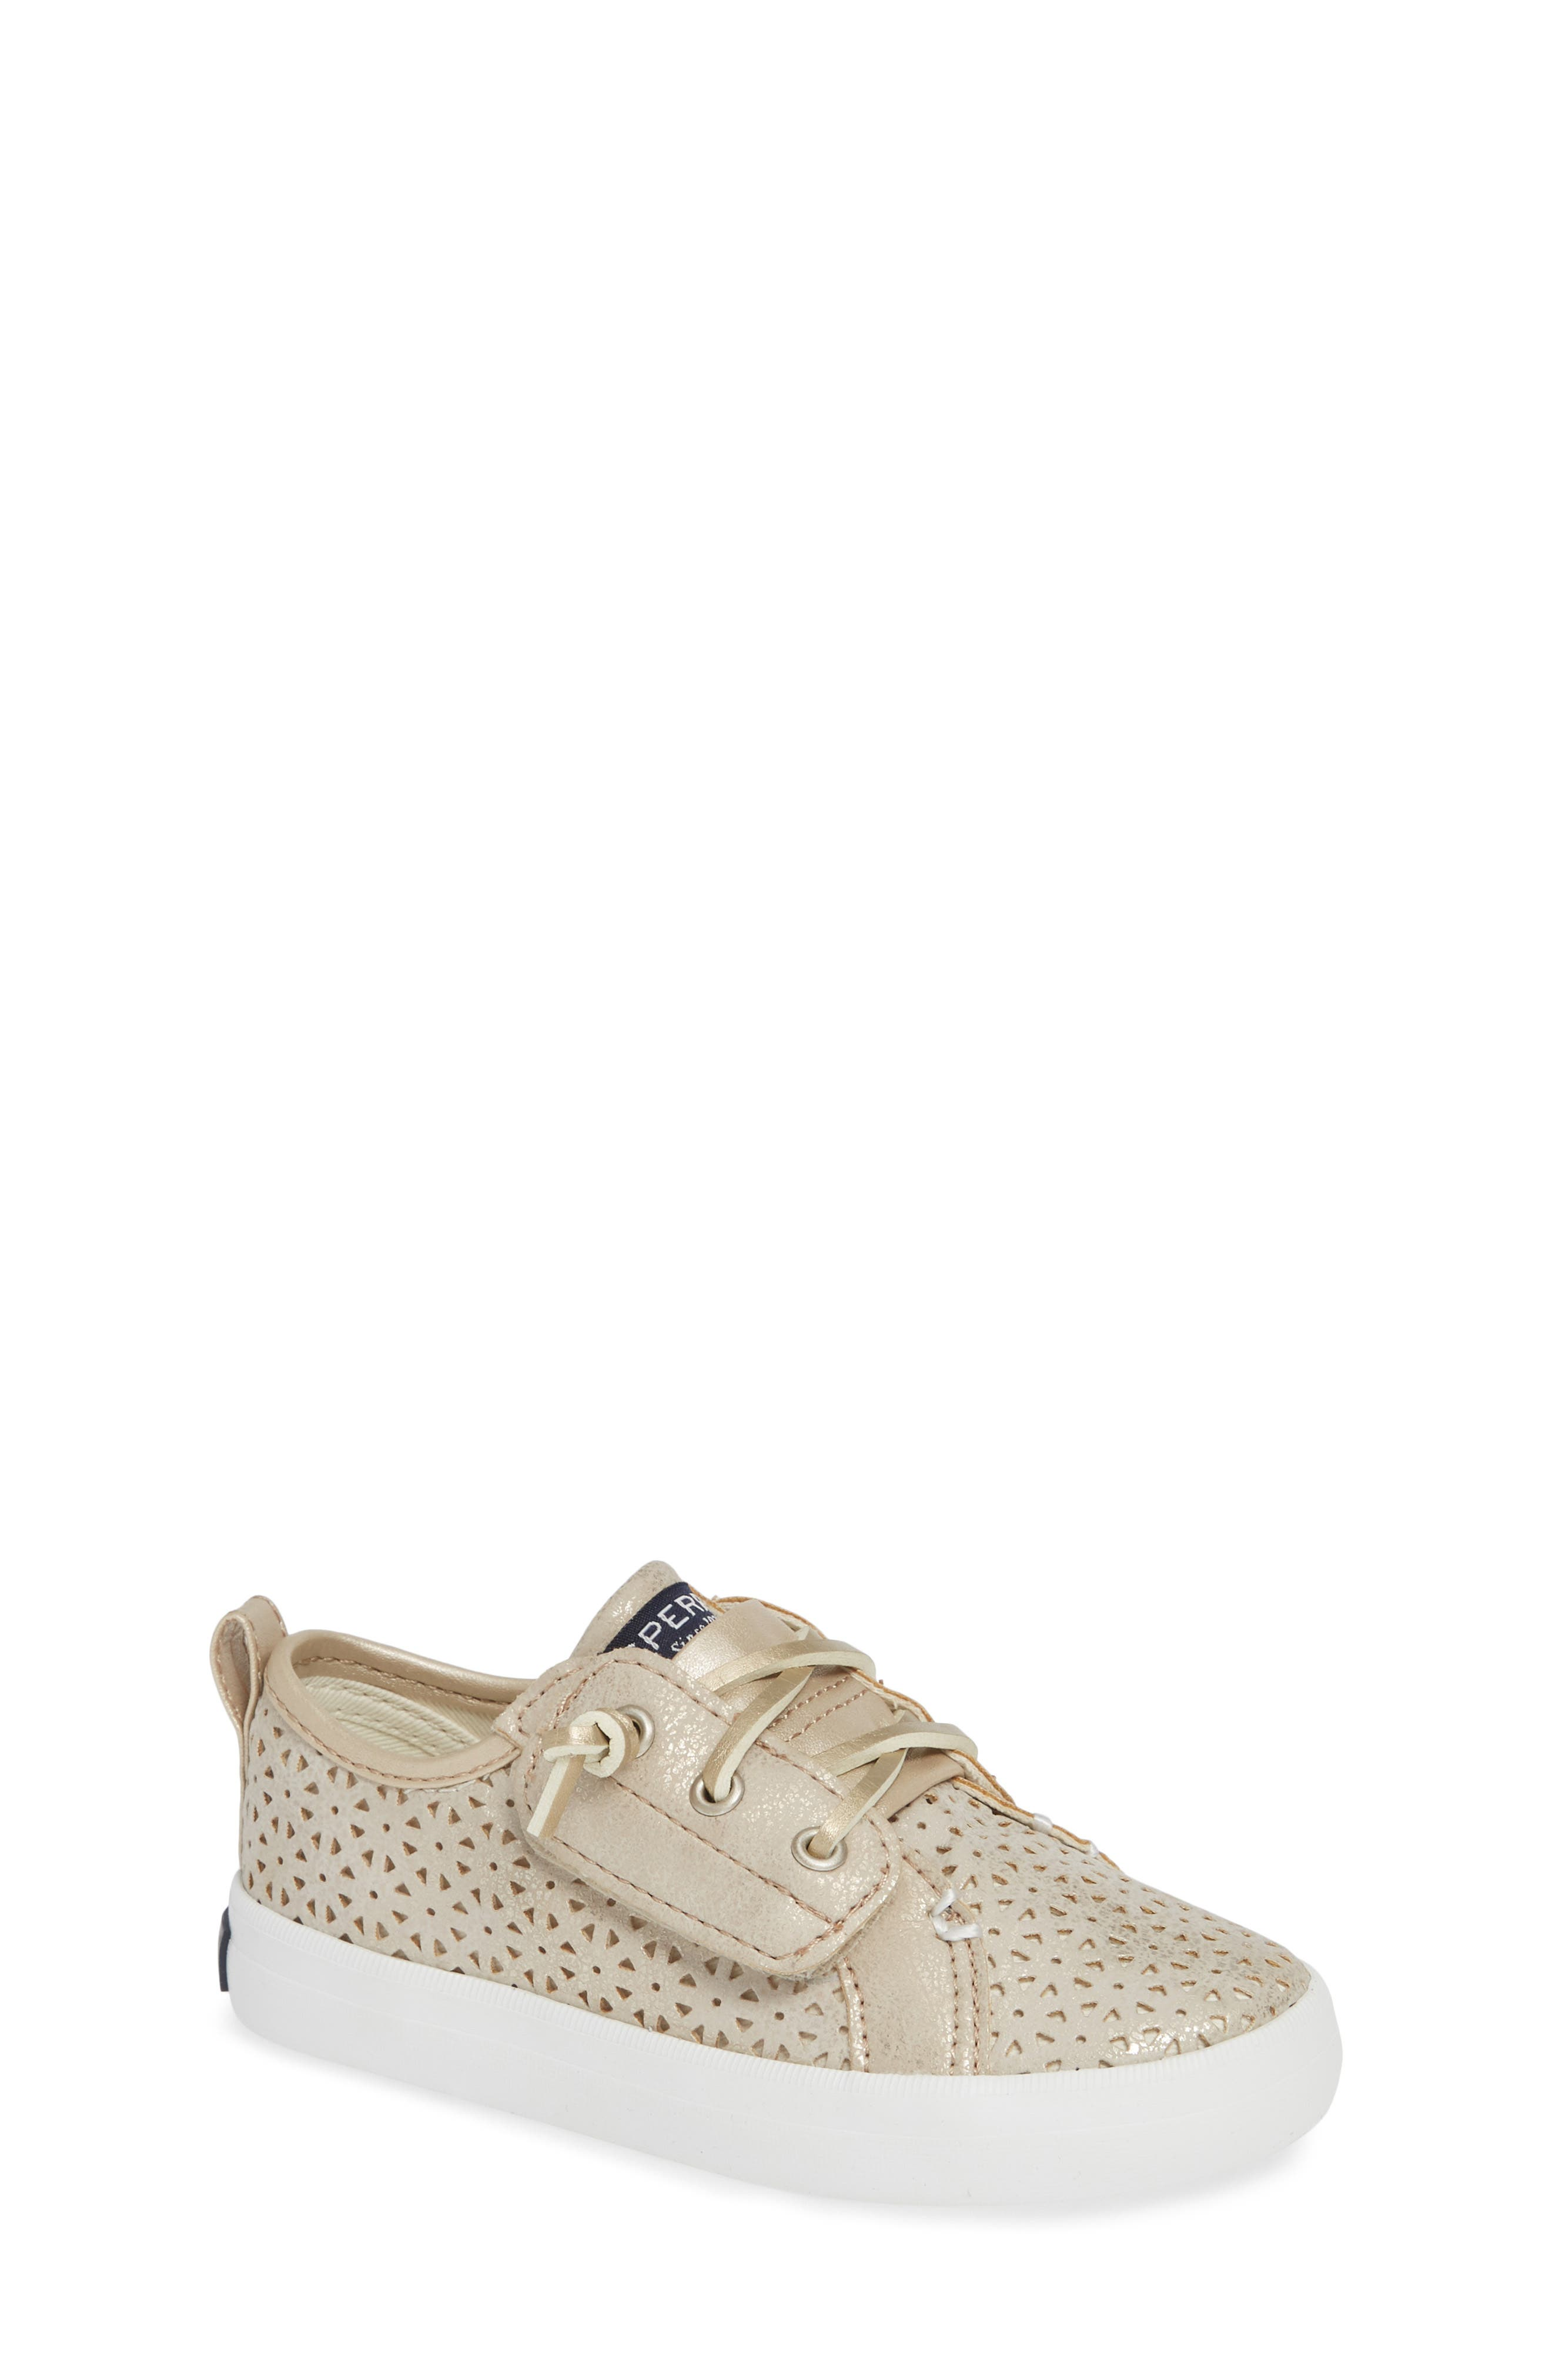 Sperry Crest Vibe Sneaker,                             Main thumbnail 1, color,                             CHAMPAGNE SYNTHETIC